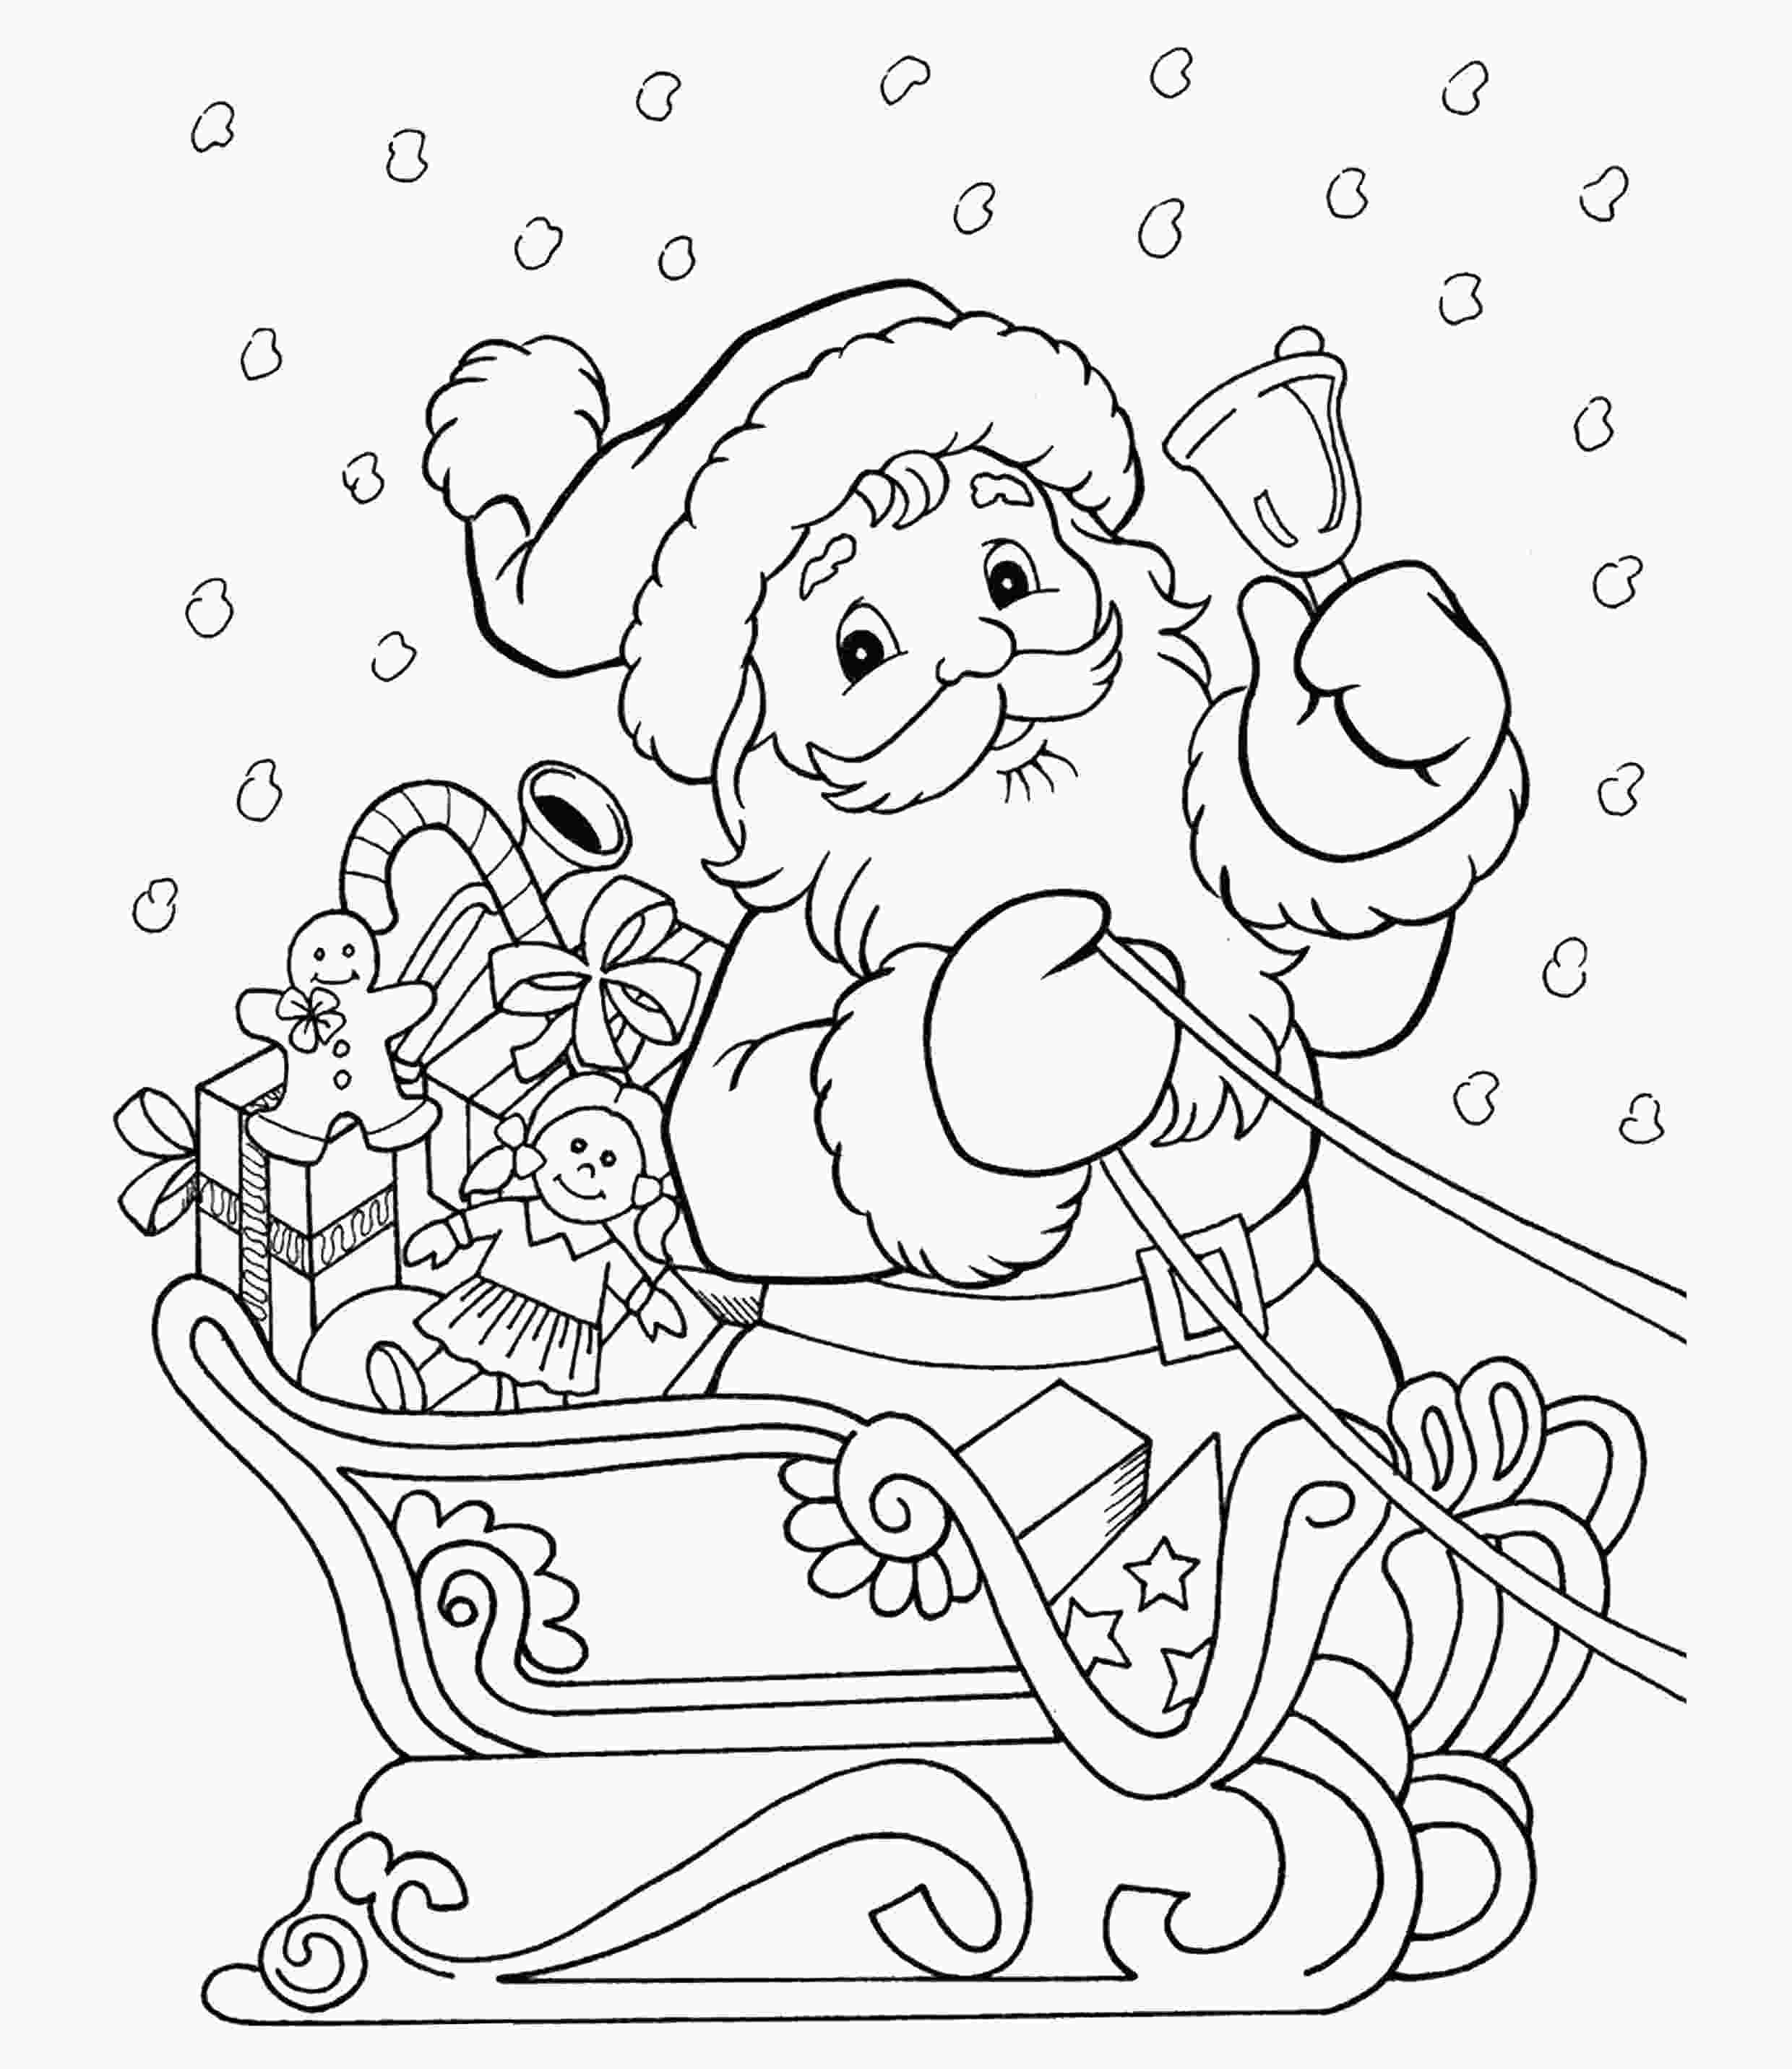 kids coloring pages 2020 2020 colouring competition